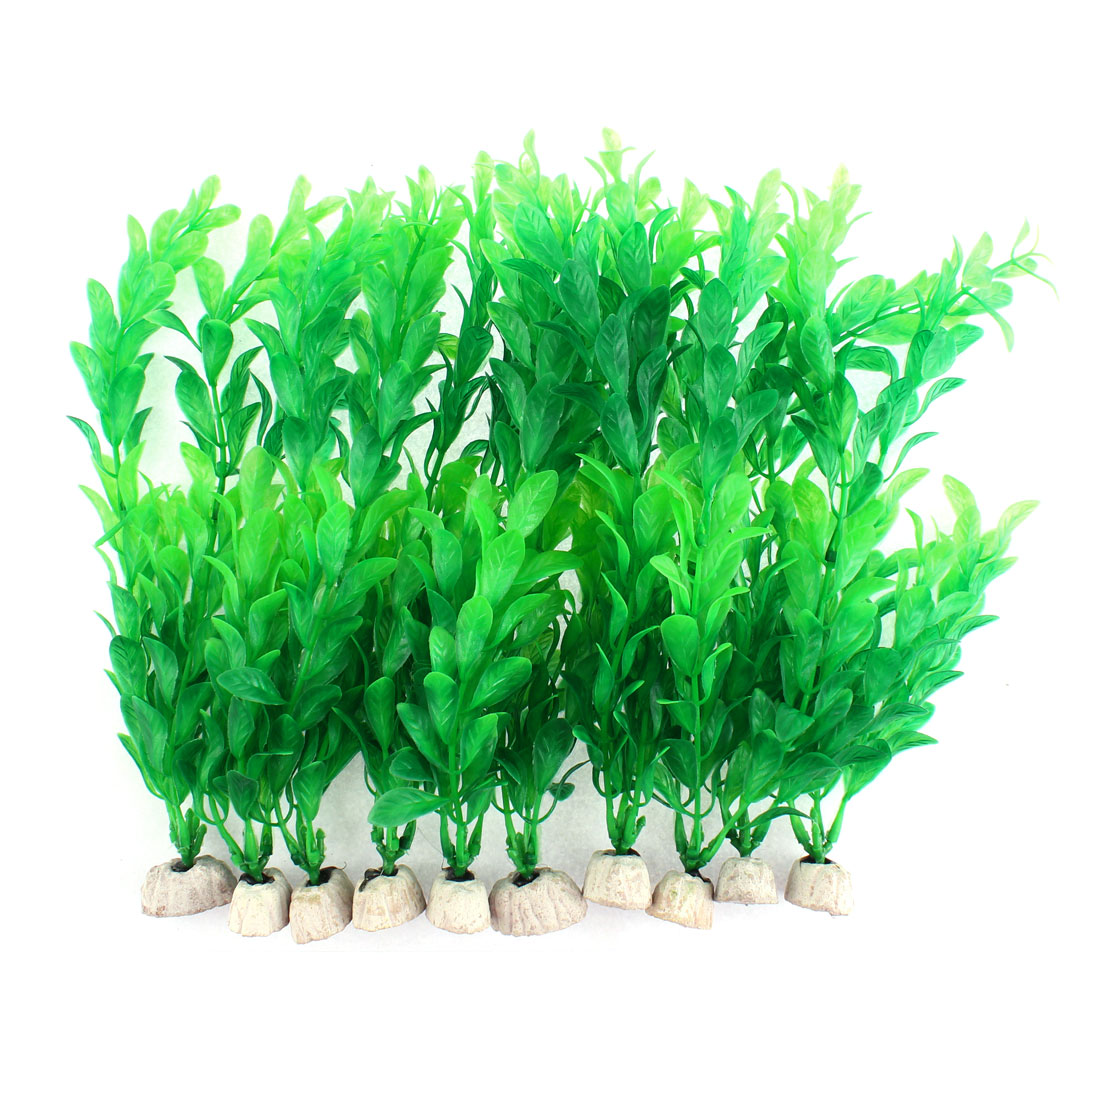 Aquarium Emulational Plastic Water Plant Ornament 23 x 8cm High 10pcs